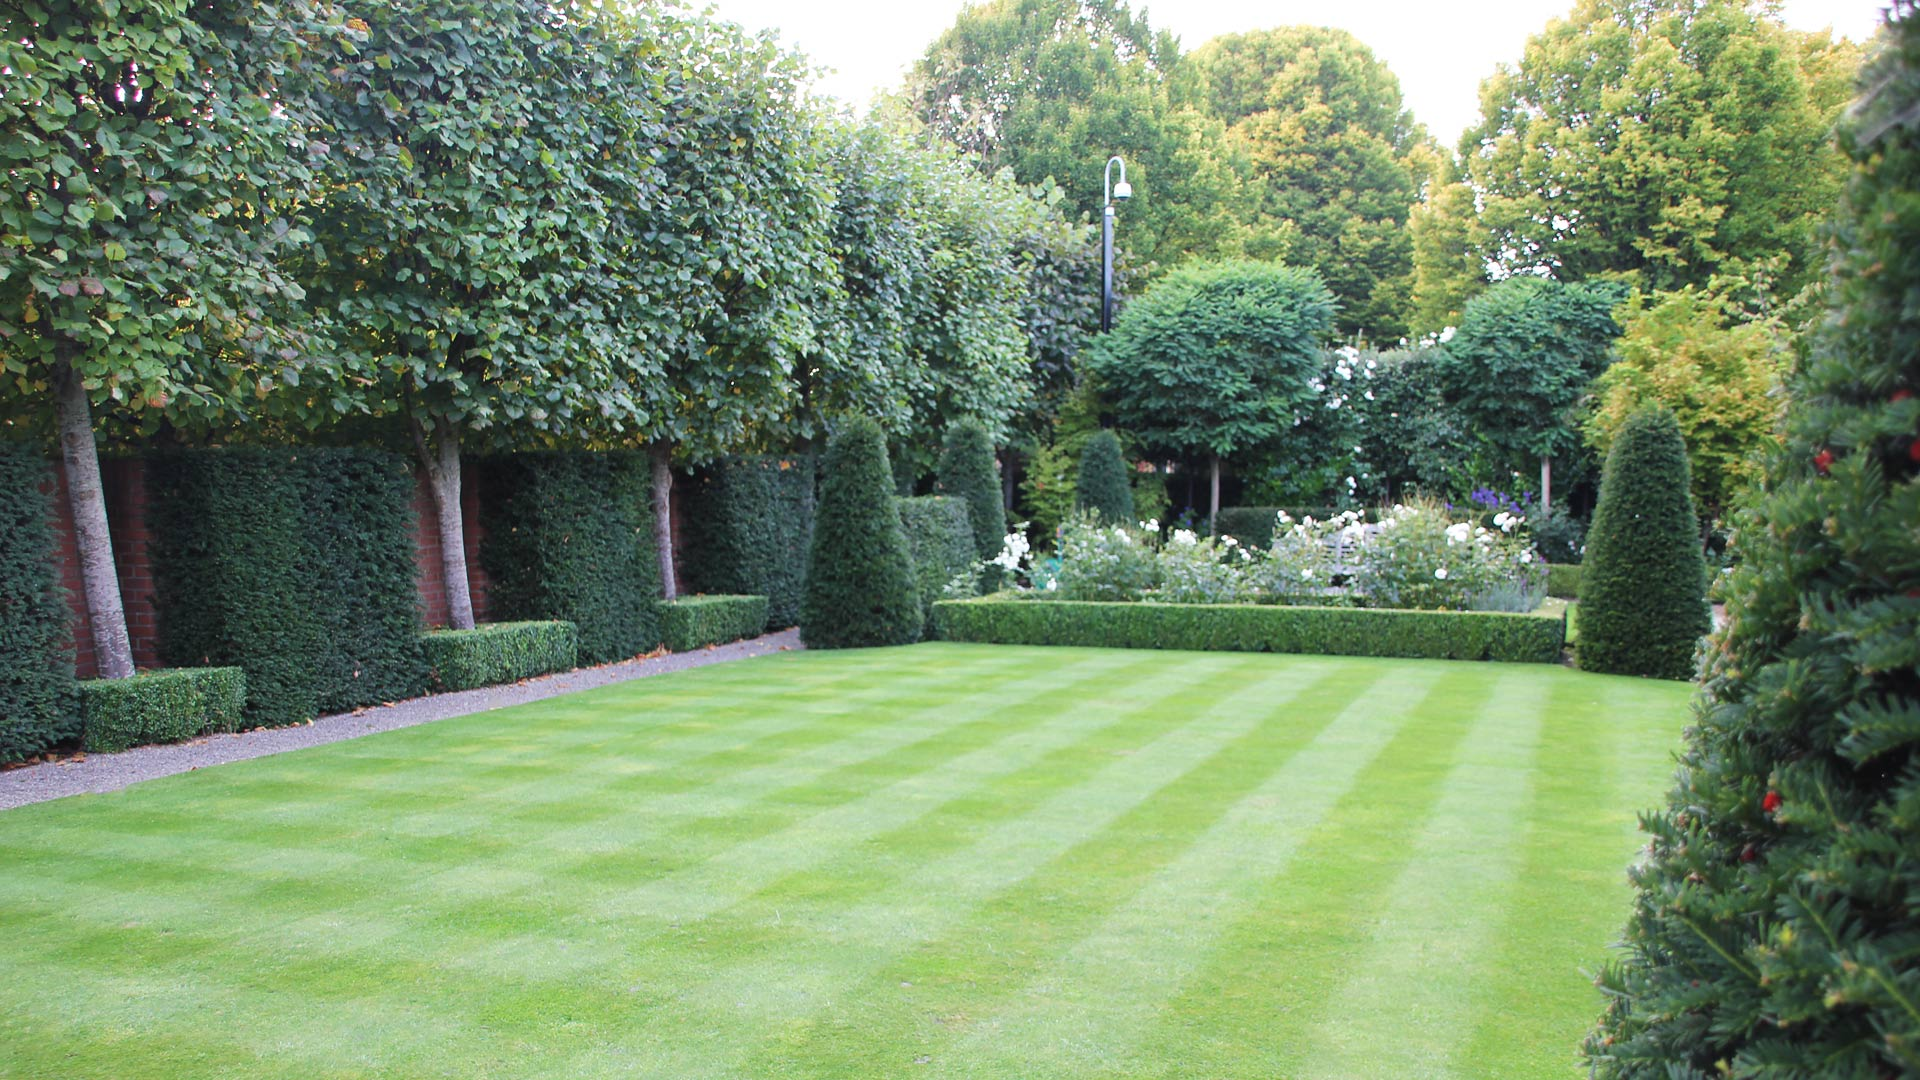 Lawn care service damian costello garden design for Garden landscaping services